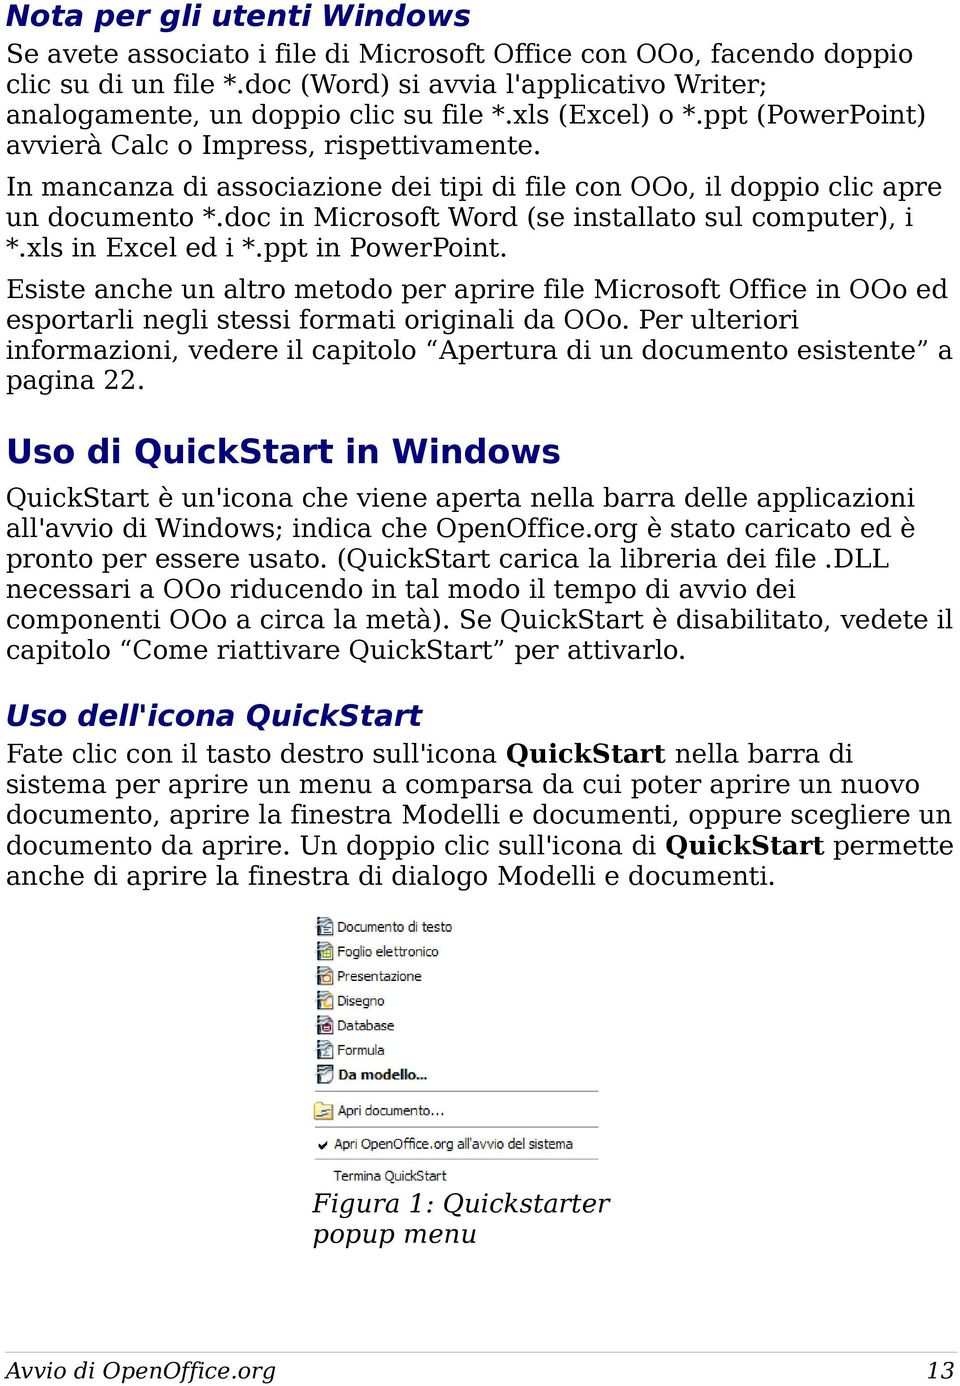 doc in Microsoft Word (se installato sul computer), i *.xls in Excel ed i *.ppt in PowerPoint.